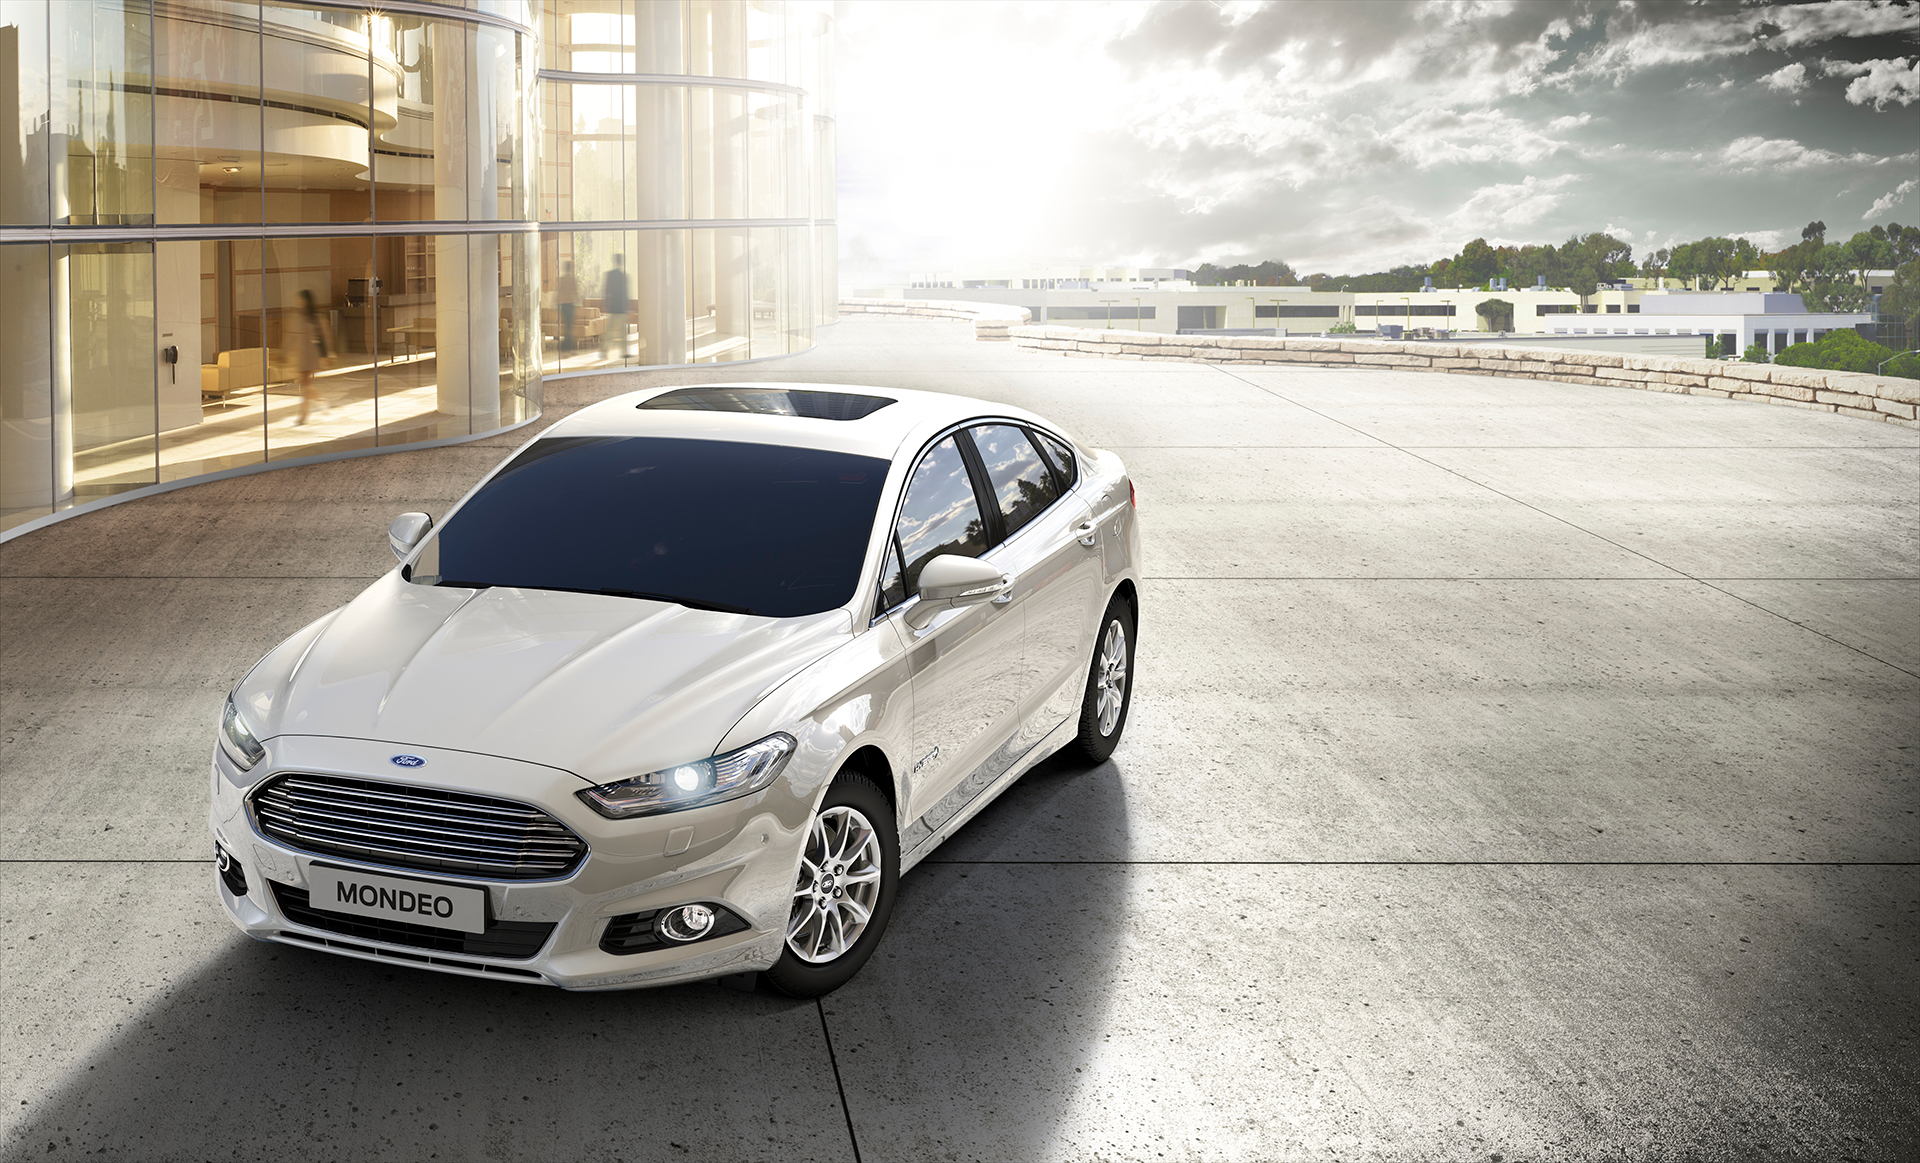 Ford Mondeo Hybrid 2015 - avant / front